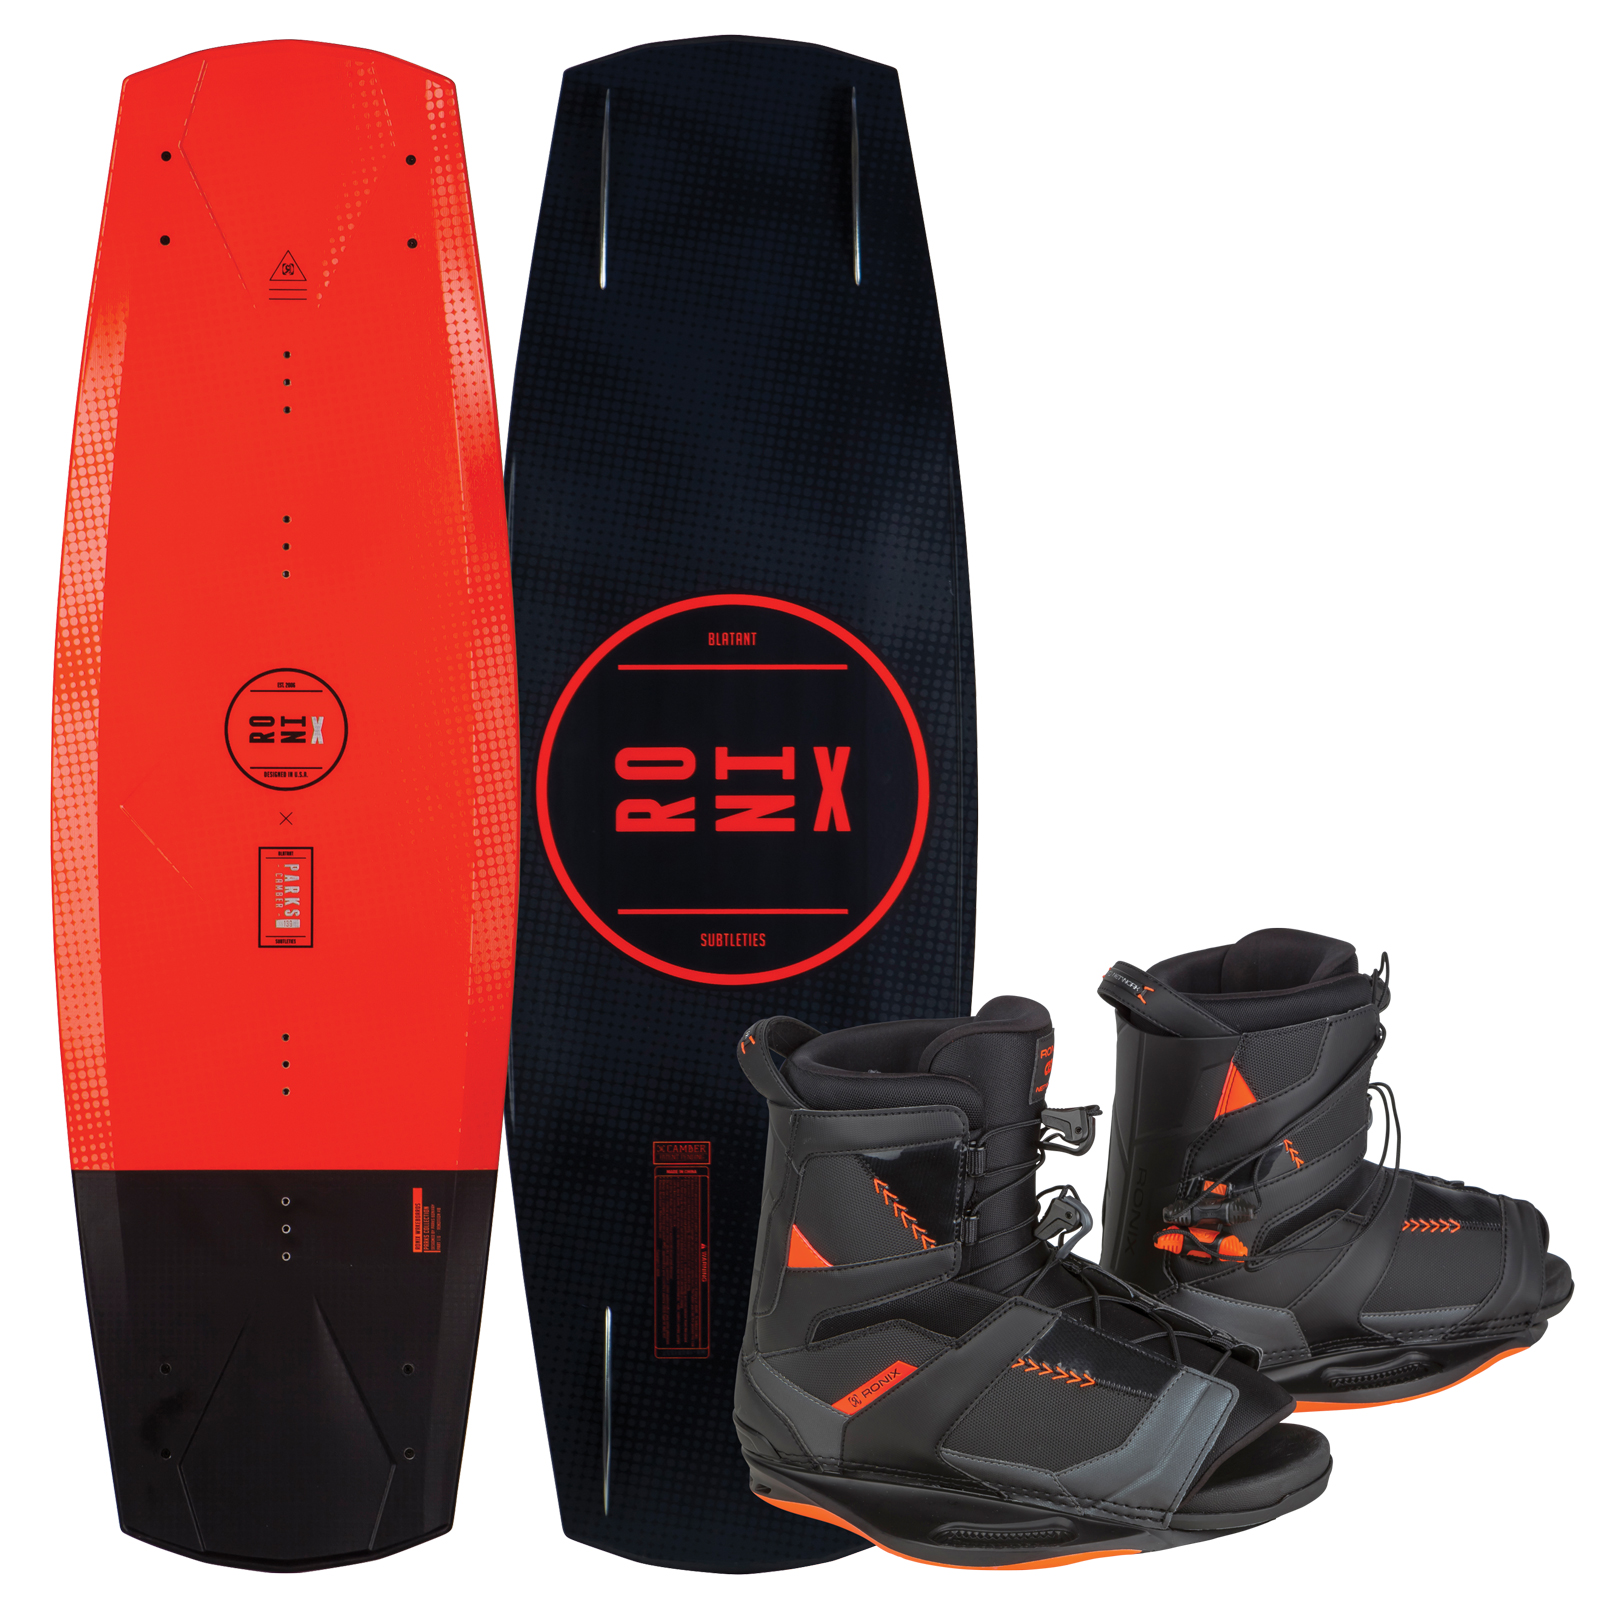 PARKS MODELLO 139 W/ NETWORK PACKAGE RONIX 2017